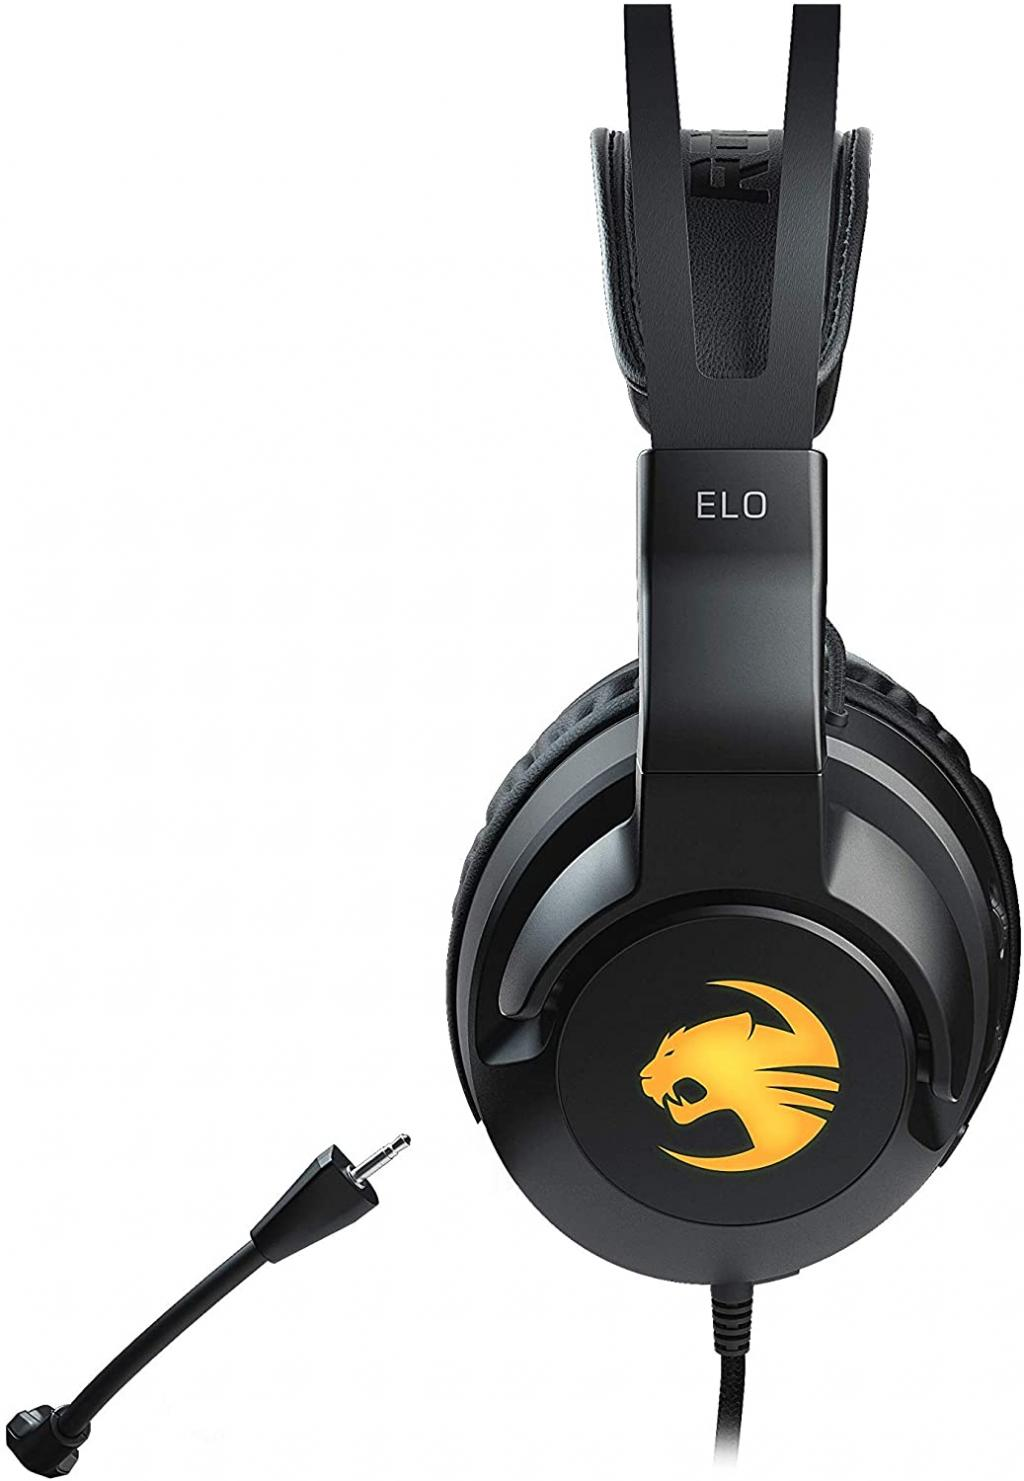 ROCCAT - Elo 7.1 USB Wired Headset_4